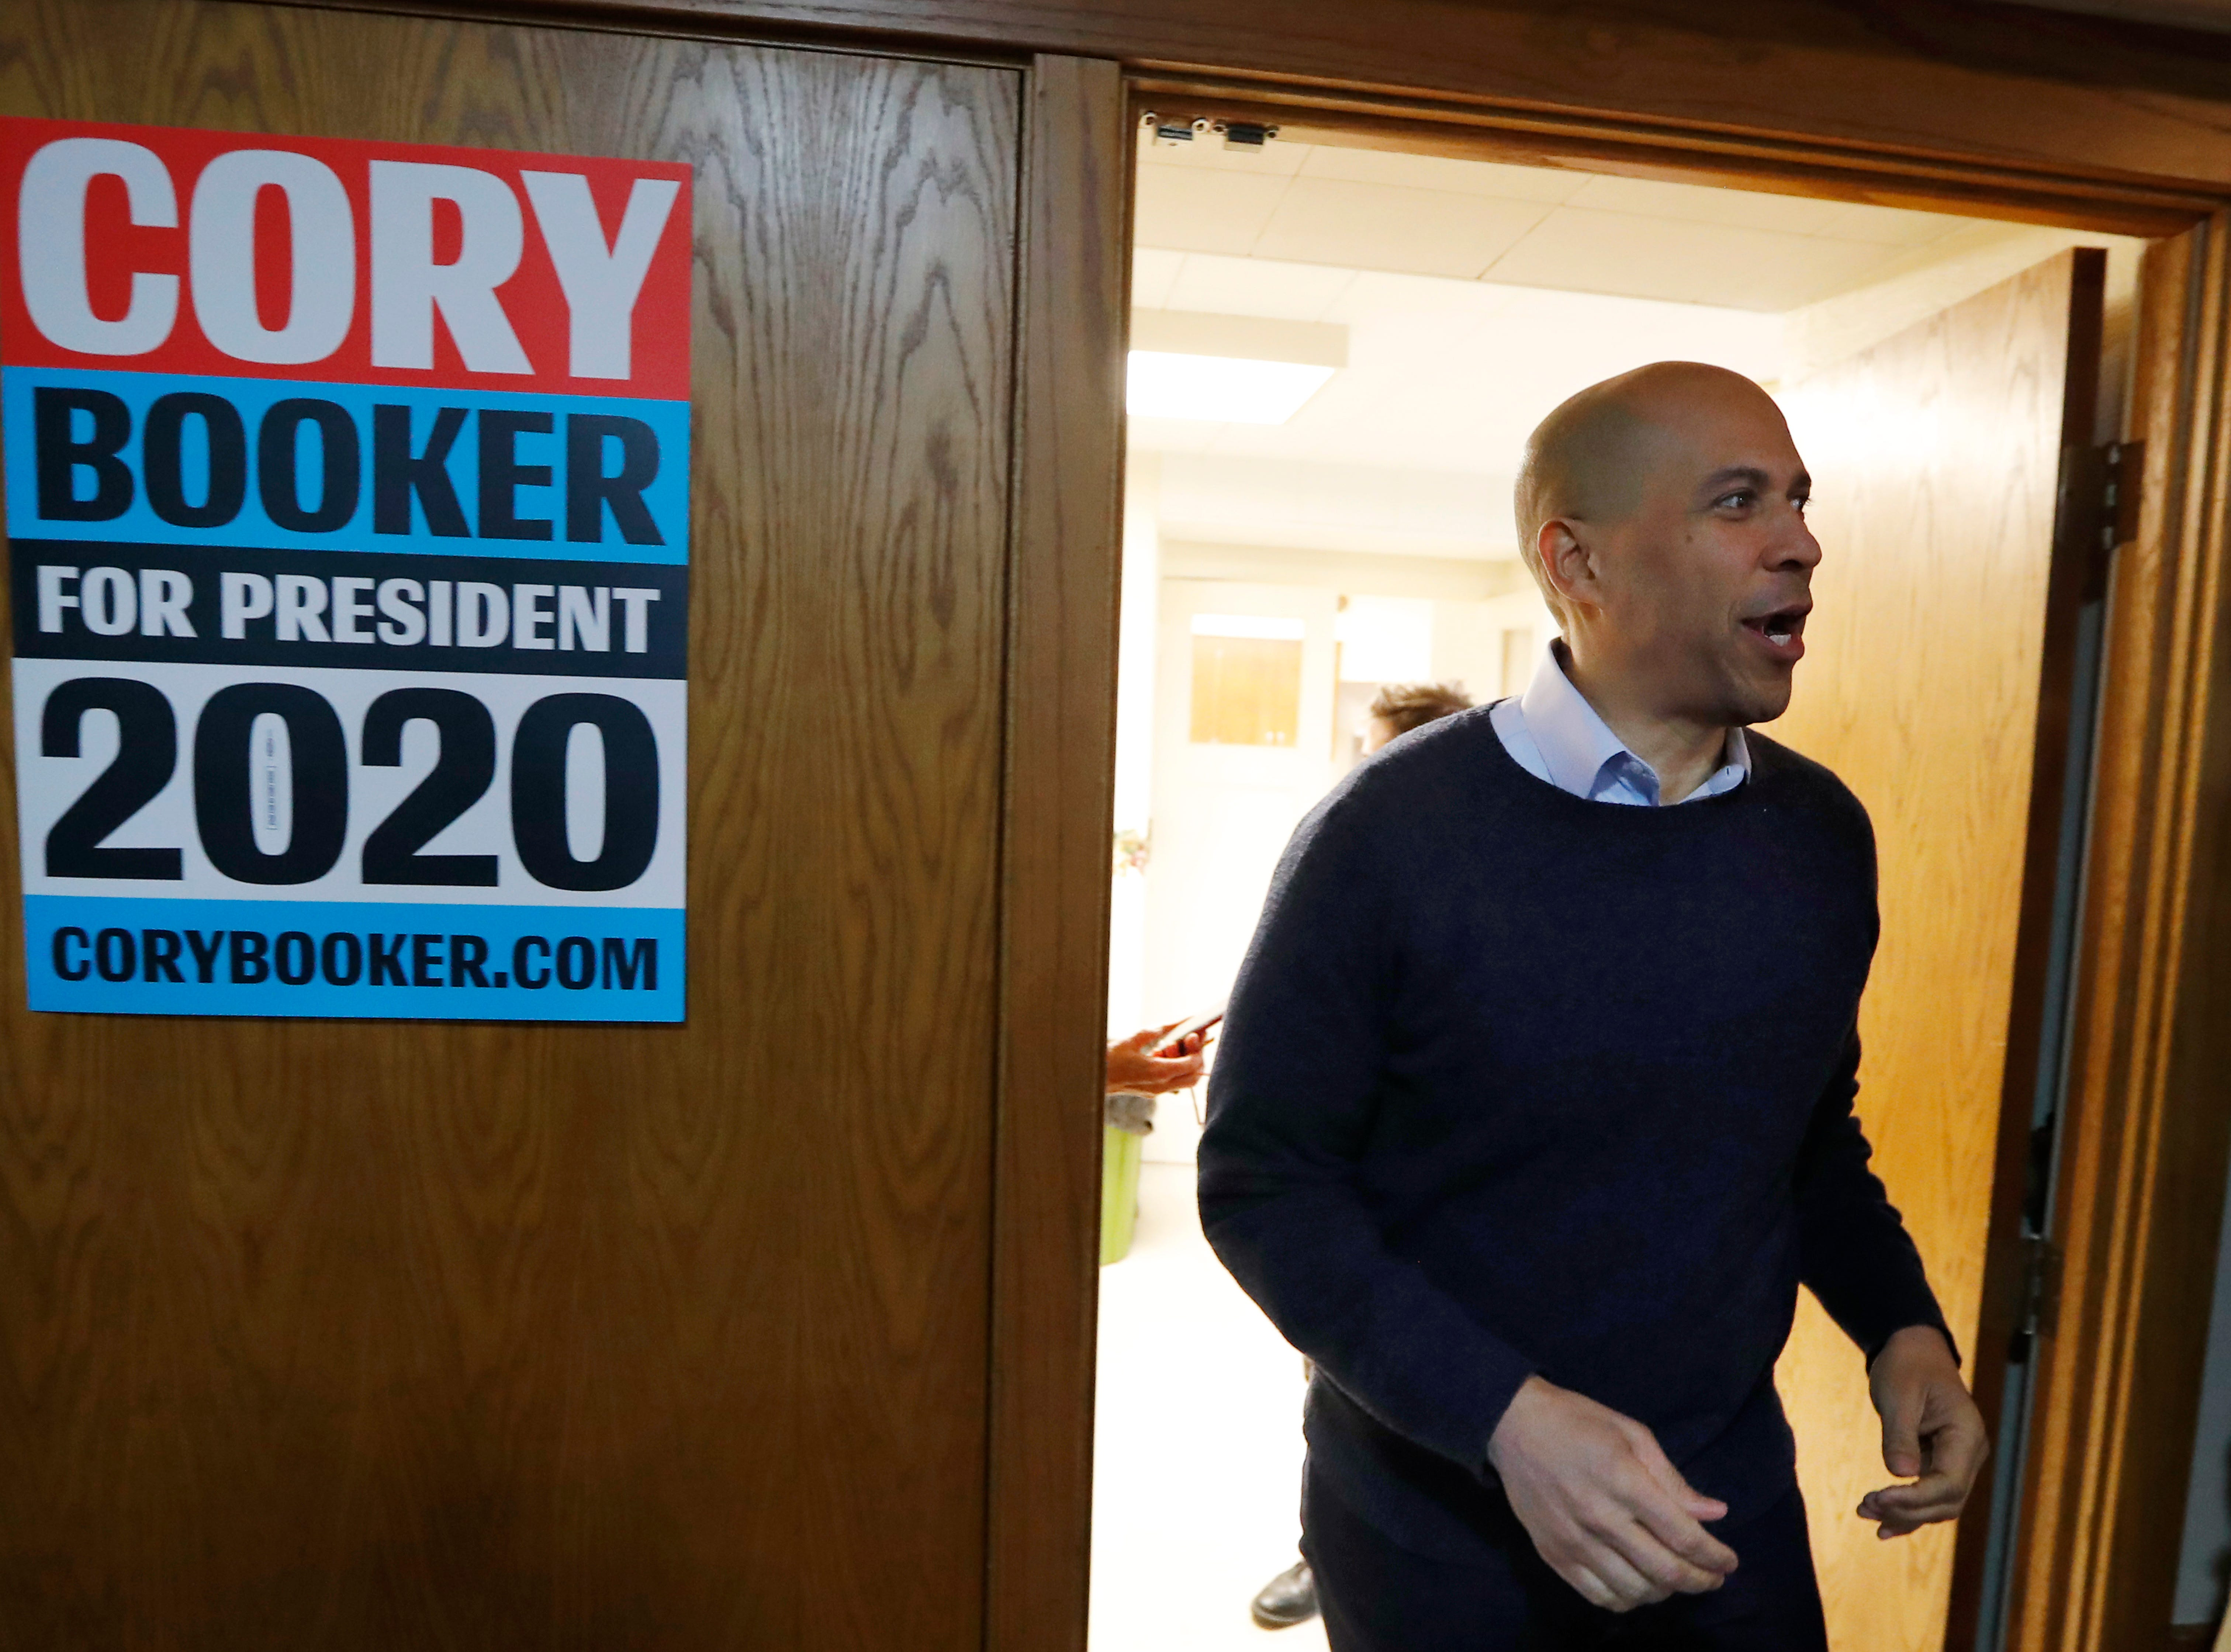 U.S. Sen. Cory Booker, D-N.J., arrives at a meet and greet with local residents at the First Congregational United Church of Christ, Friday, Feb. 8, 2019, in Mason City, Iowa. (AP Photo/Charlie Neibergall)